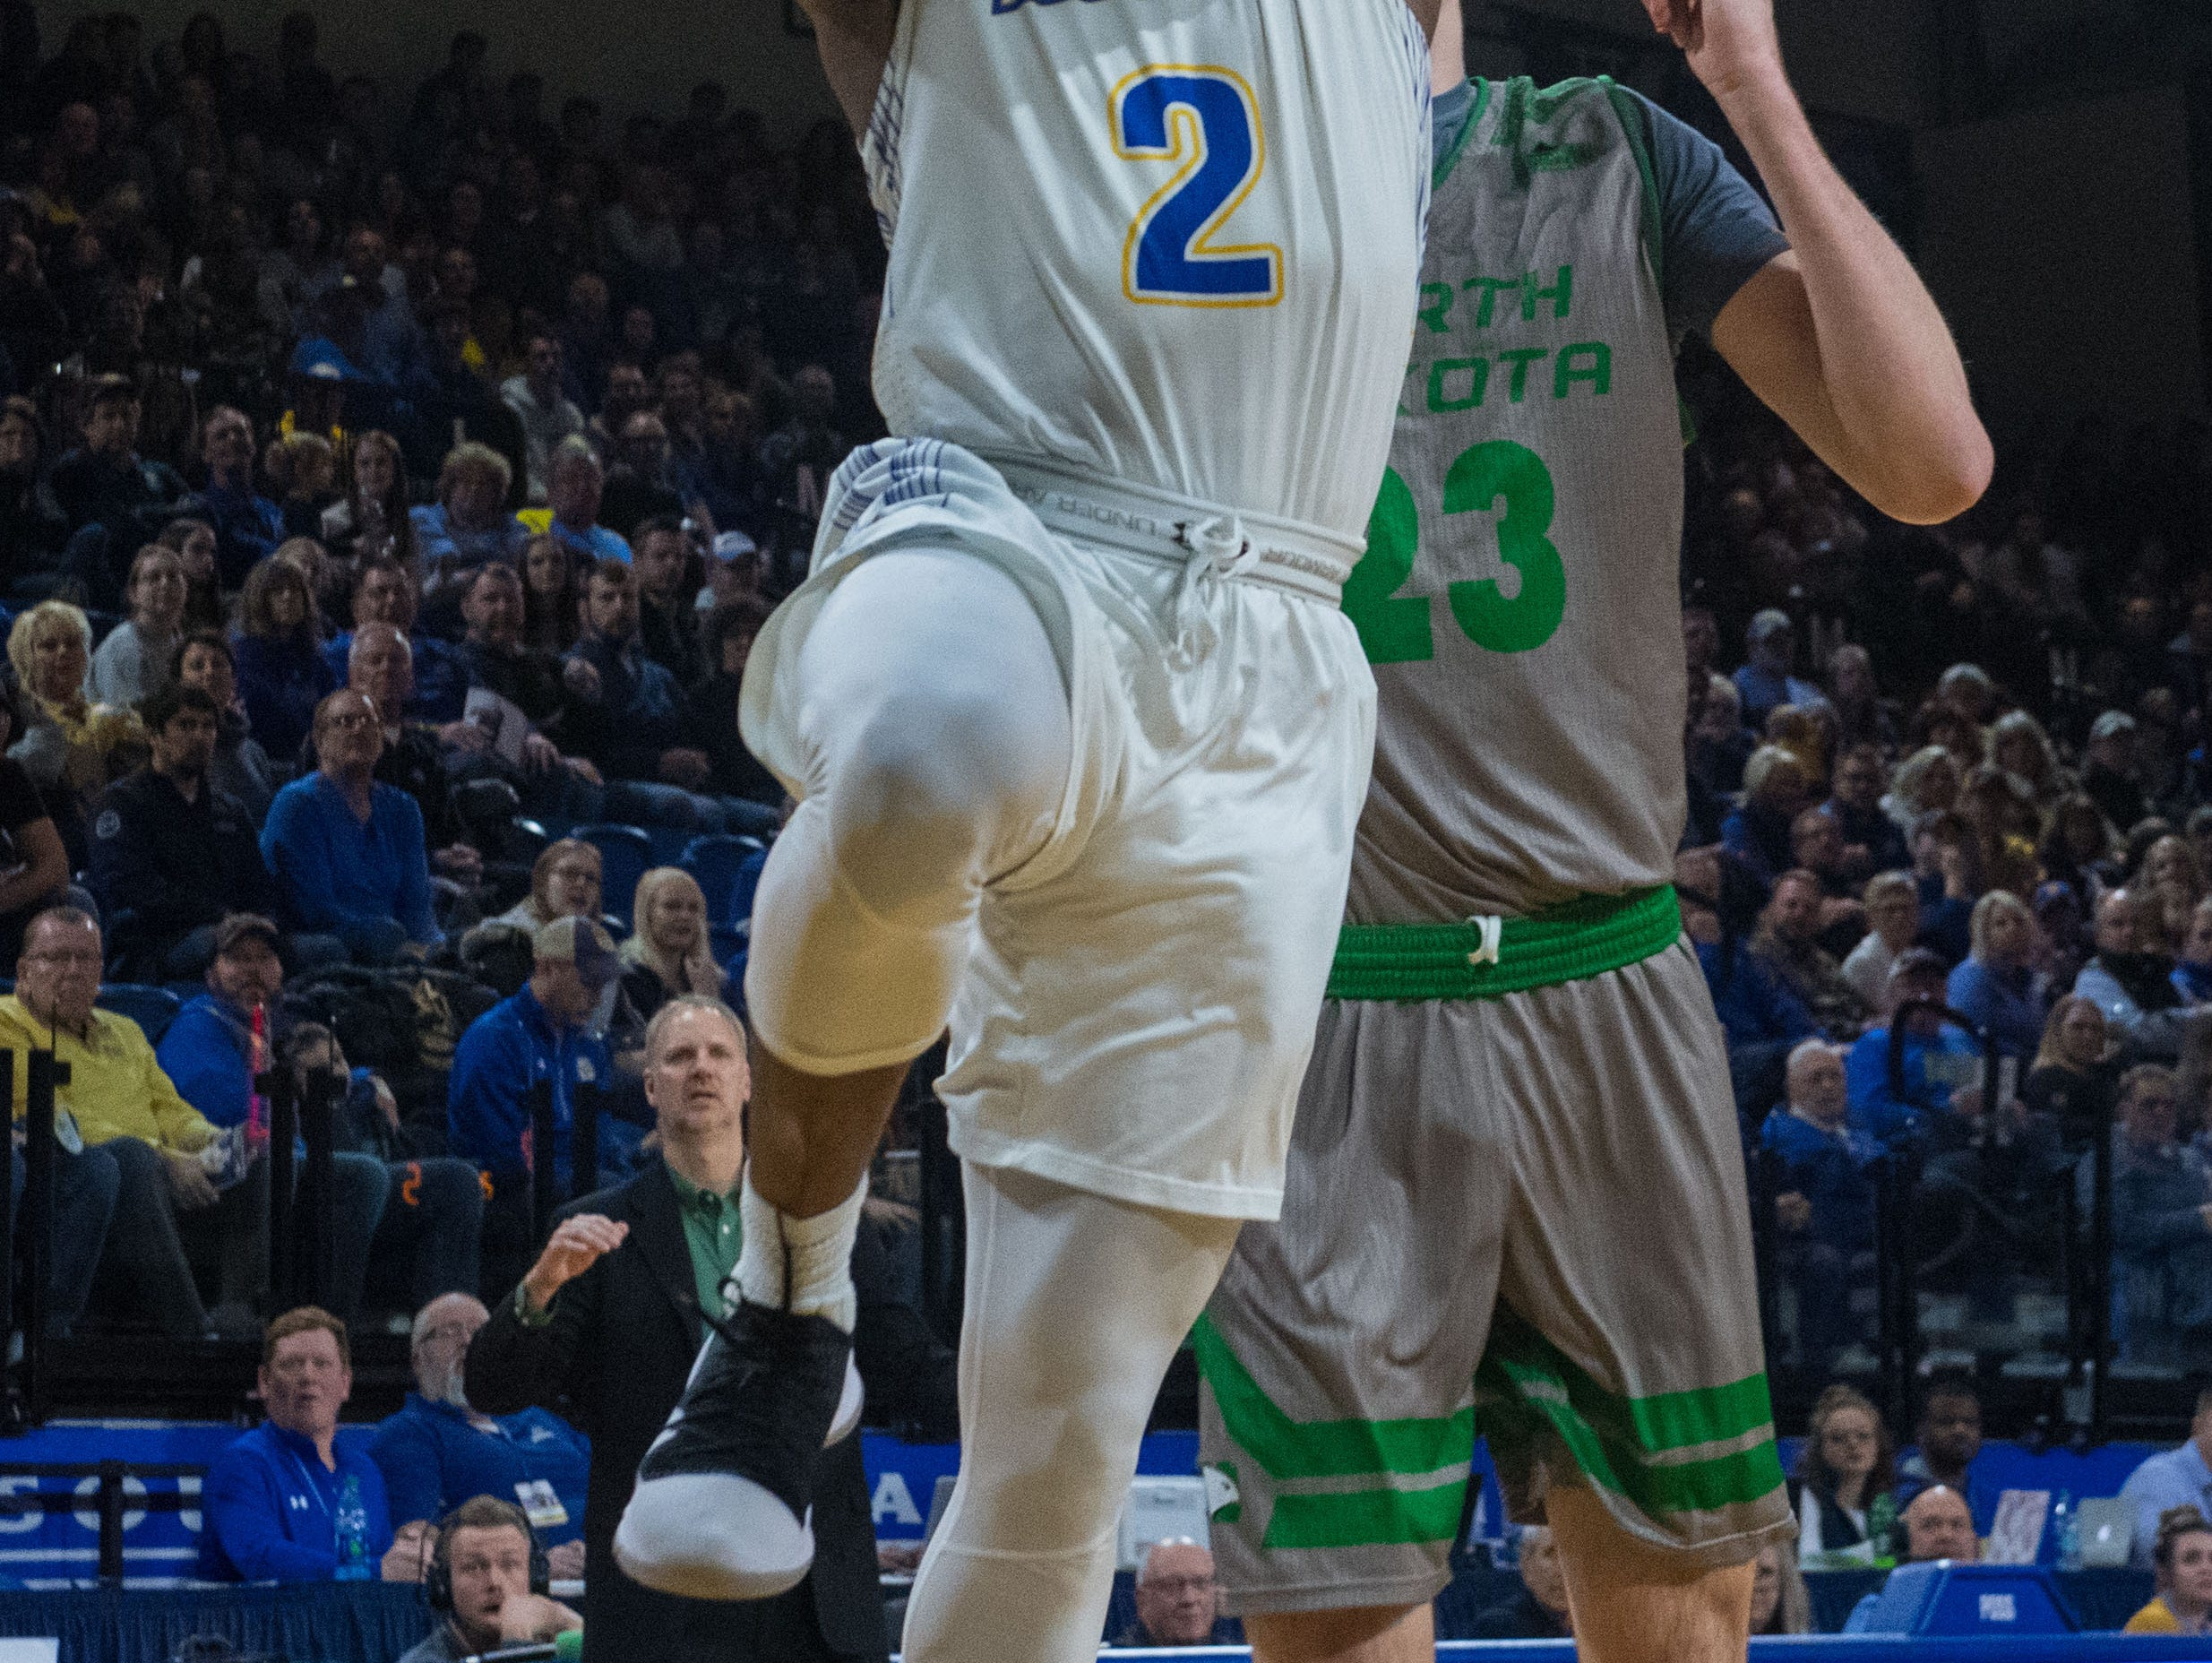 South Dakota State's Tevin King (2) shoots the ball during a game against North Dakota in Brookings, S.D., Saturday, Feb. 9, 2019.